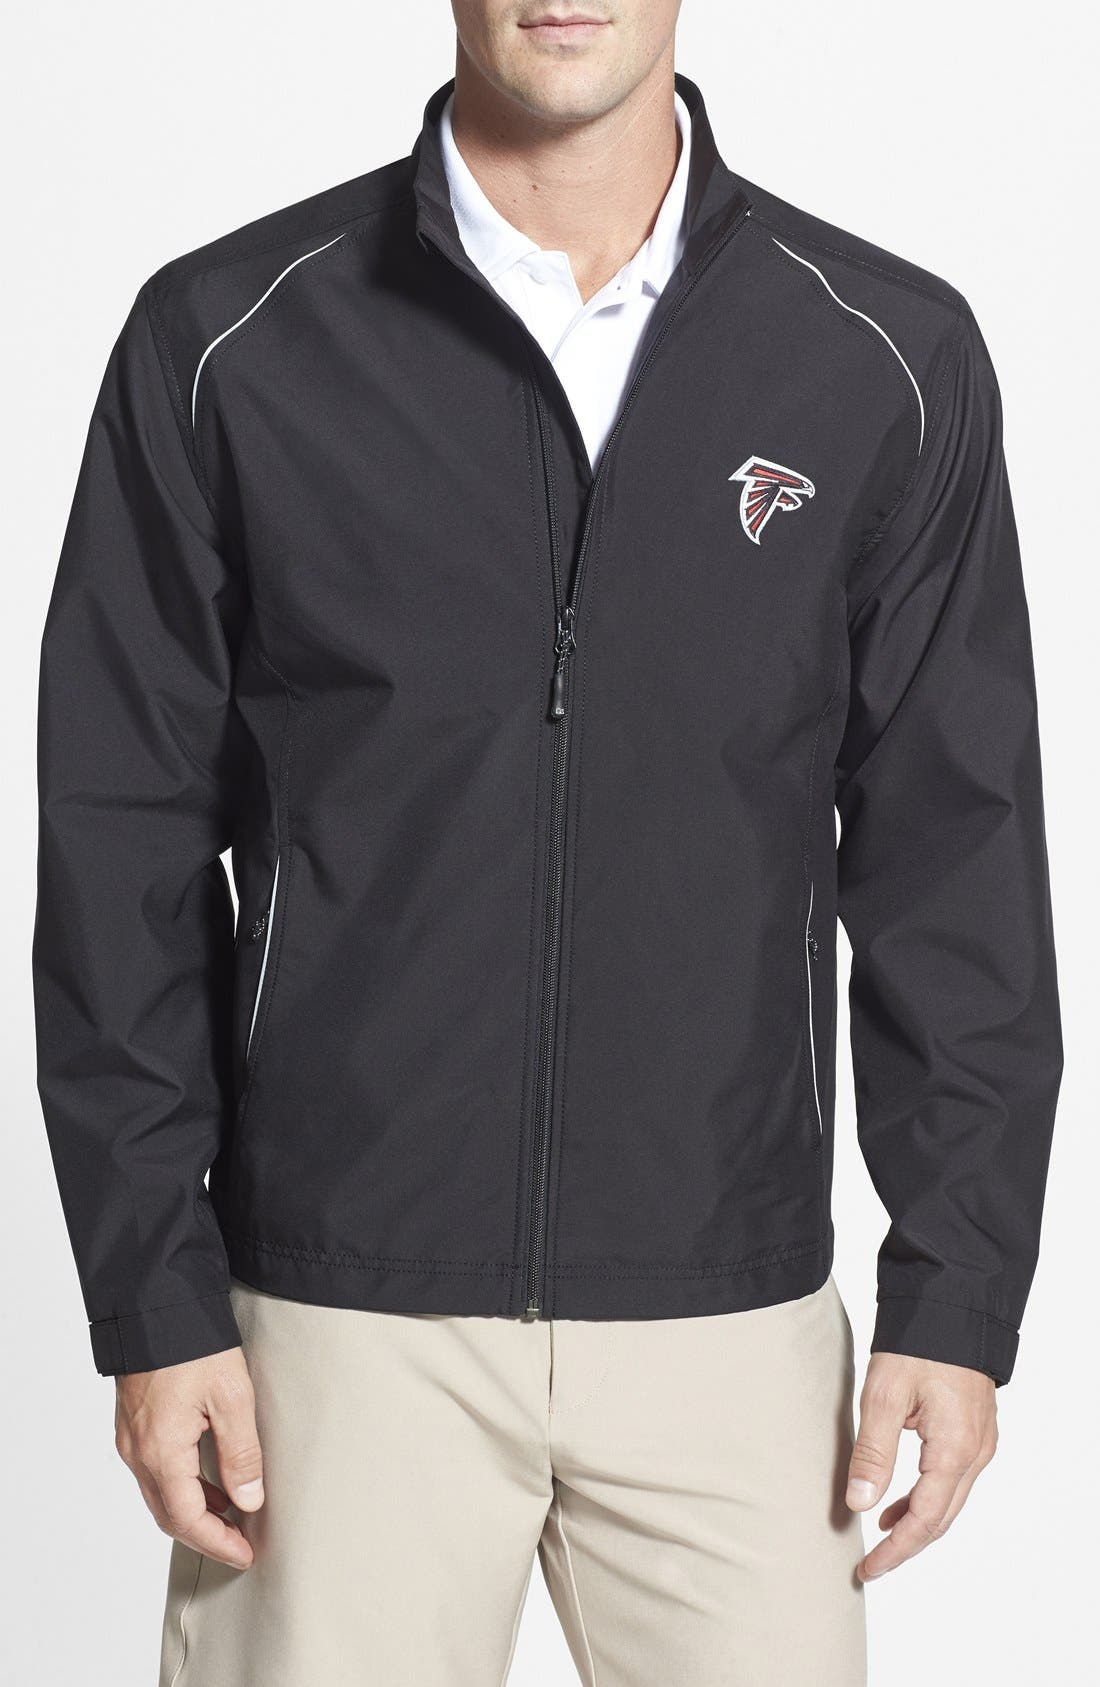 Atlanta Falcons - Beacon WeatherTec Wind & Water Resistant Jacket,                         Main,                         color, Black